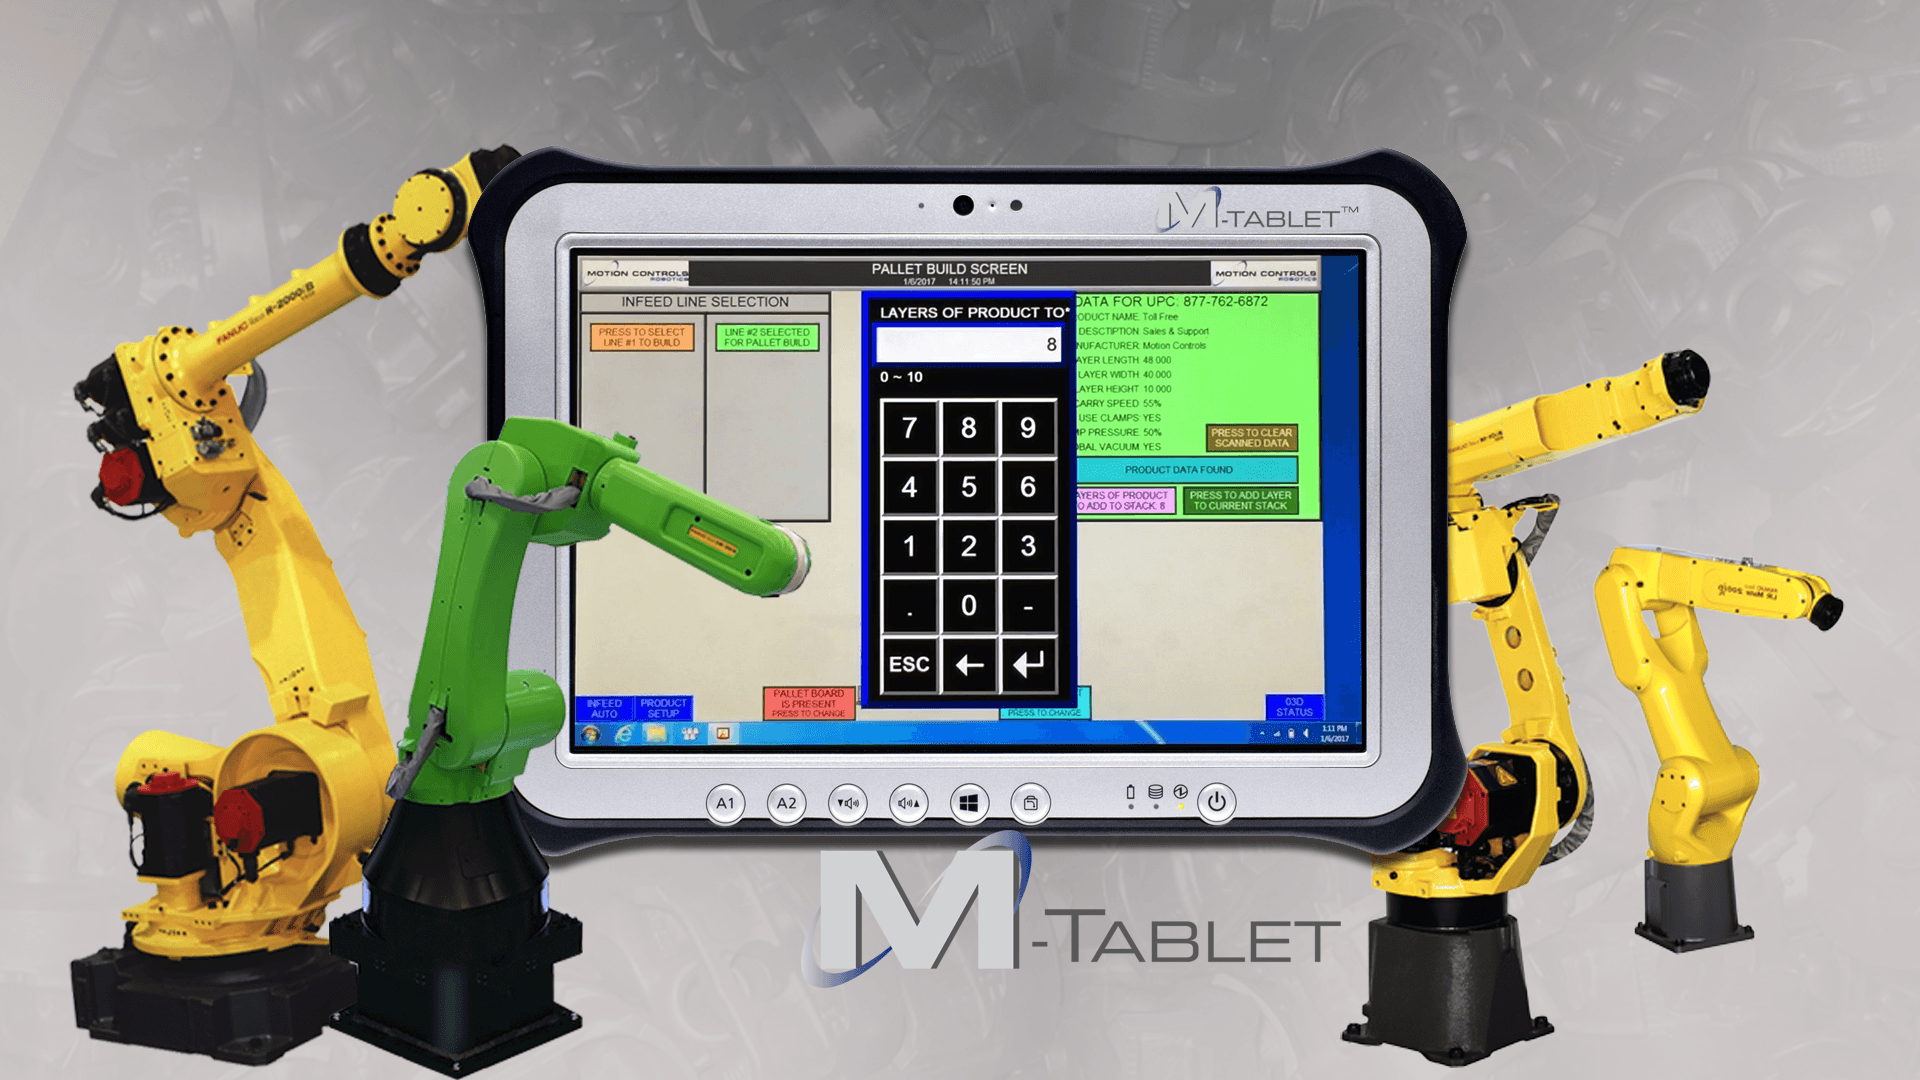 MCRI's M-Tablet Portable HMI